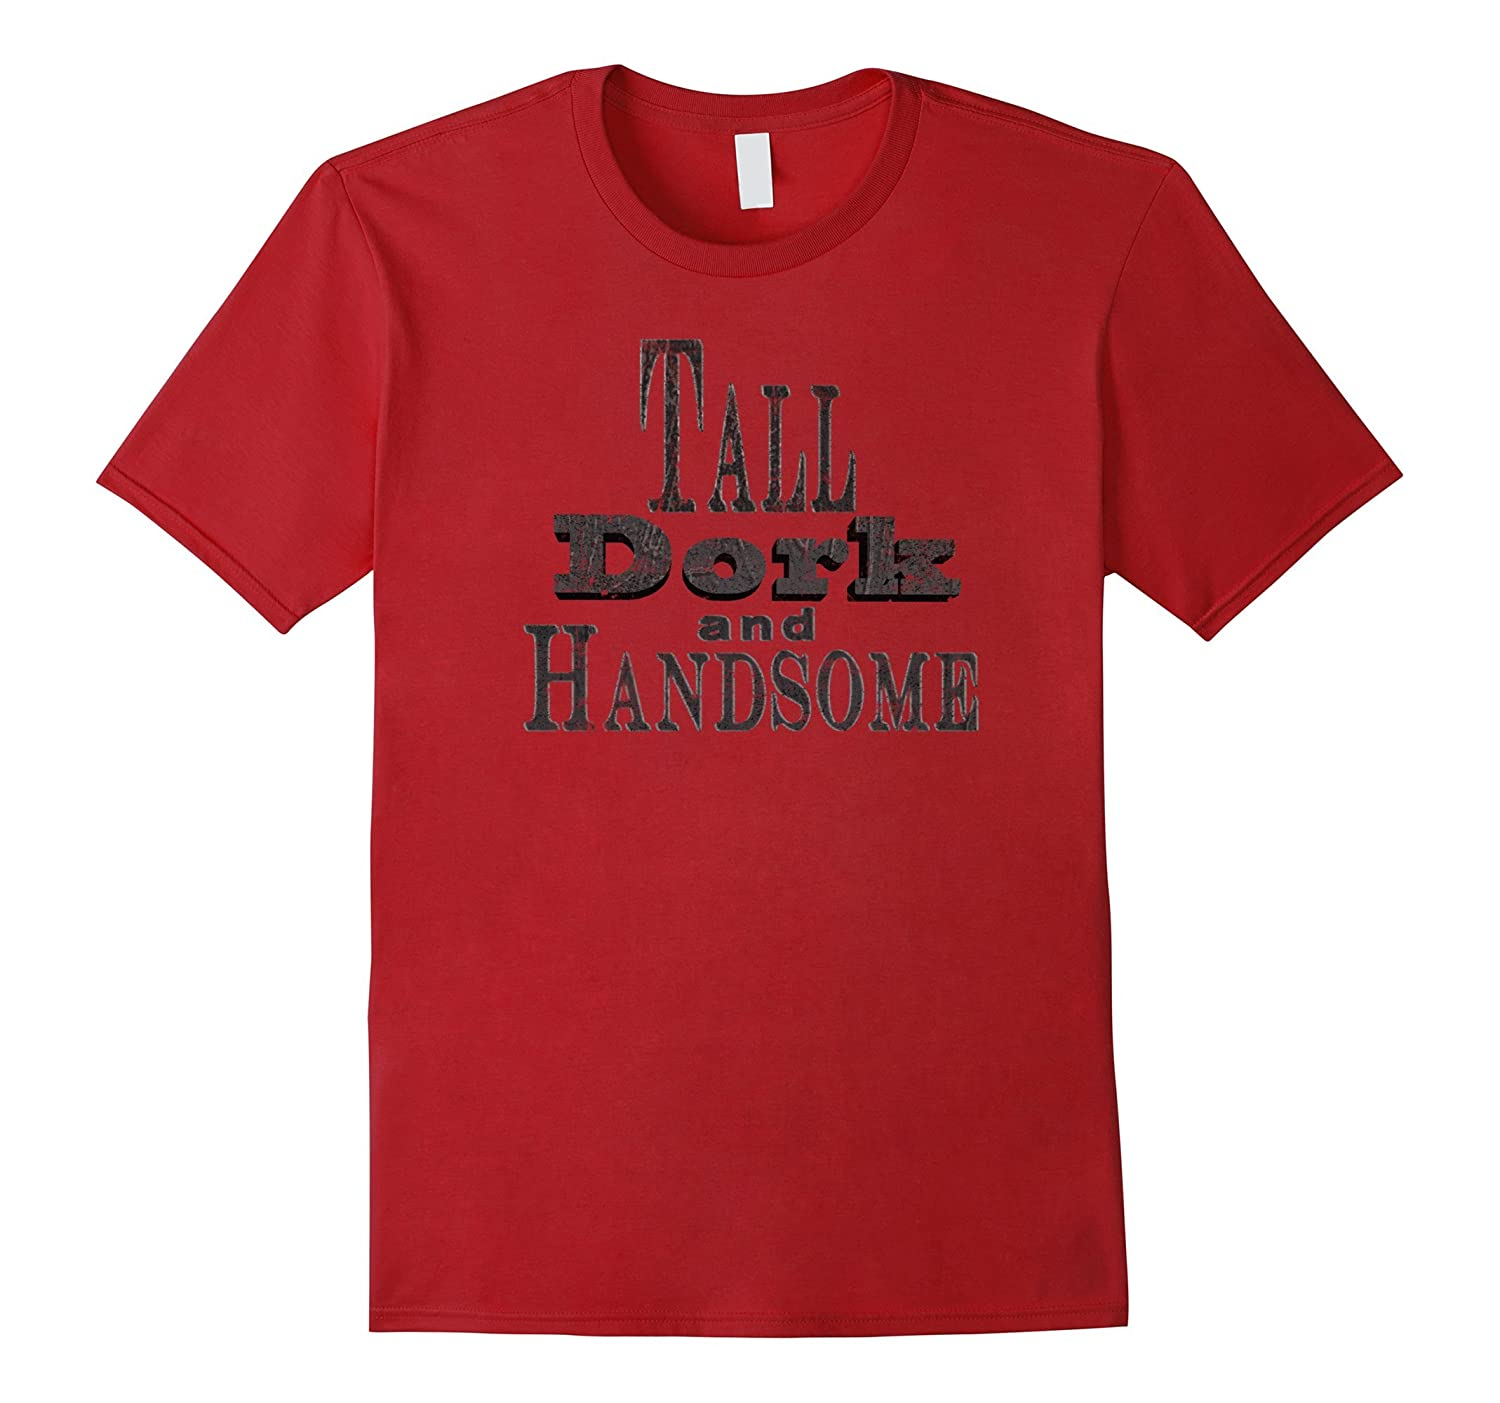 Vintage Tall Dork and Handsome Graphic T-Shirt